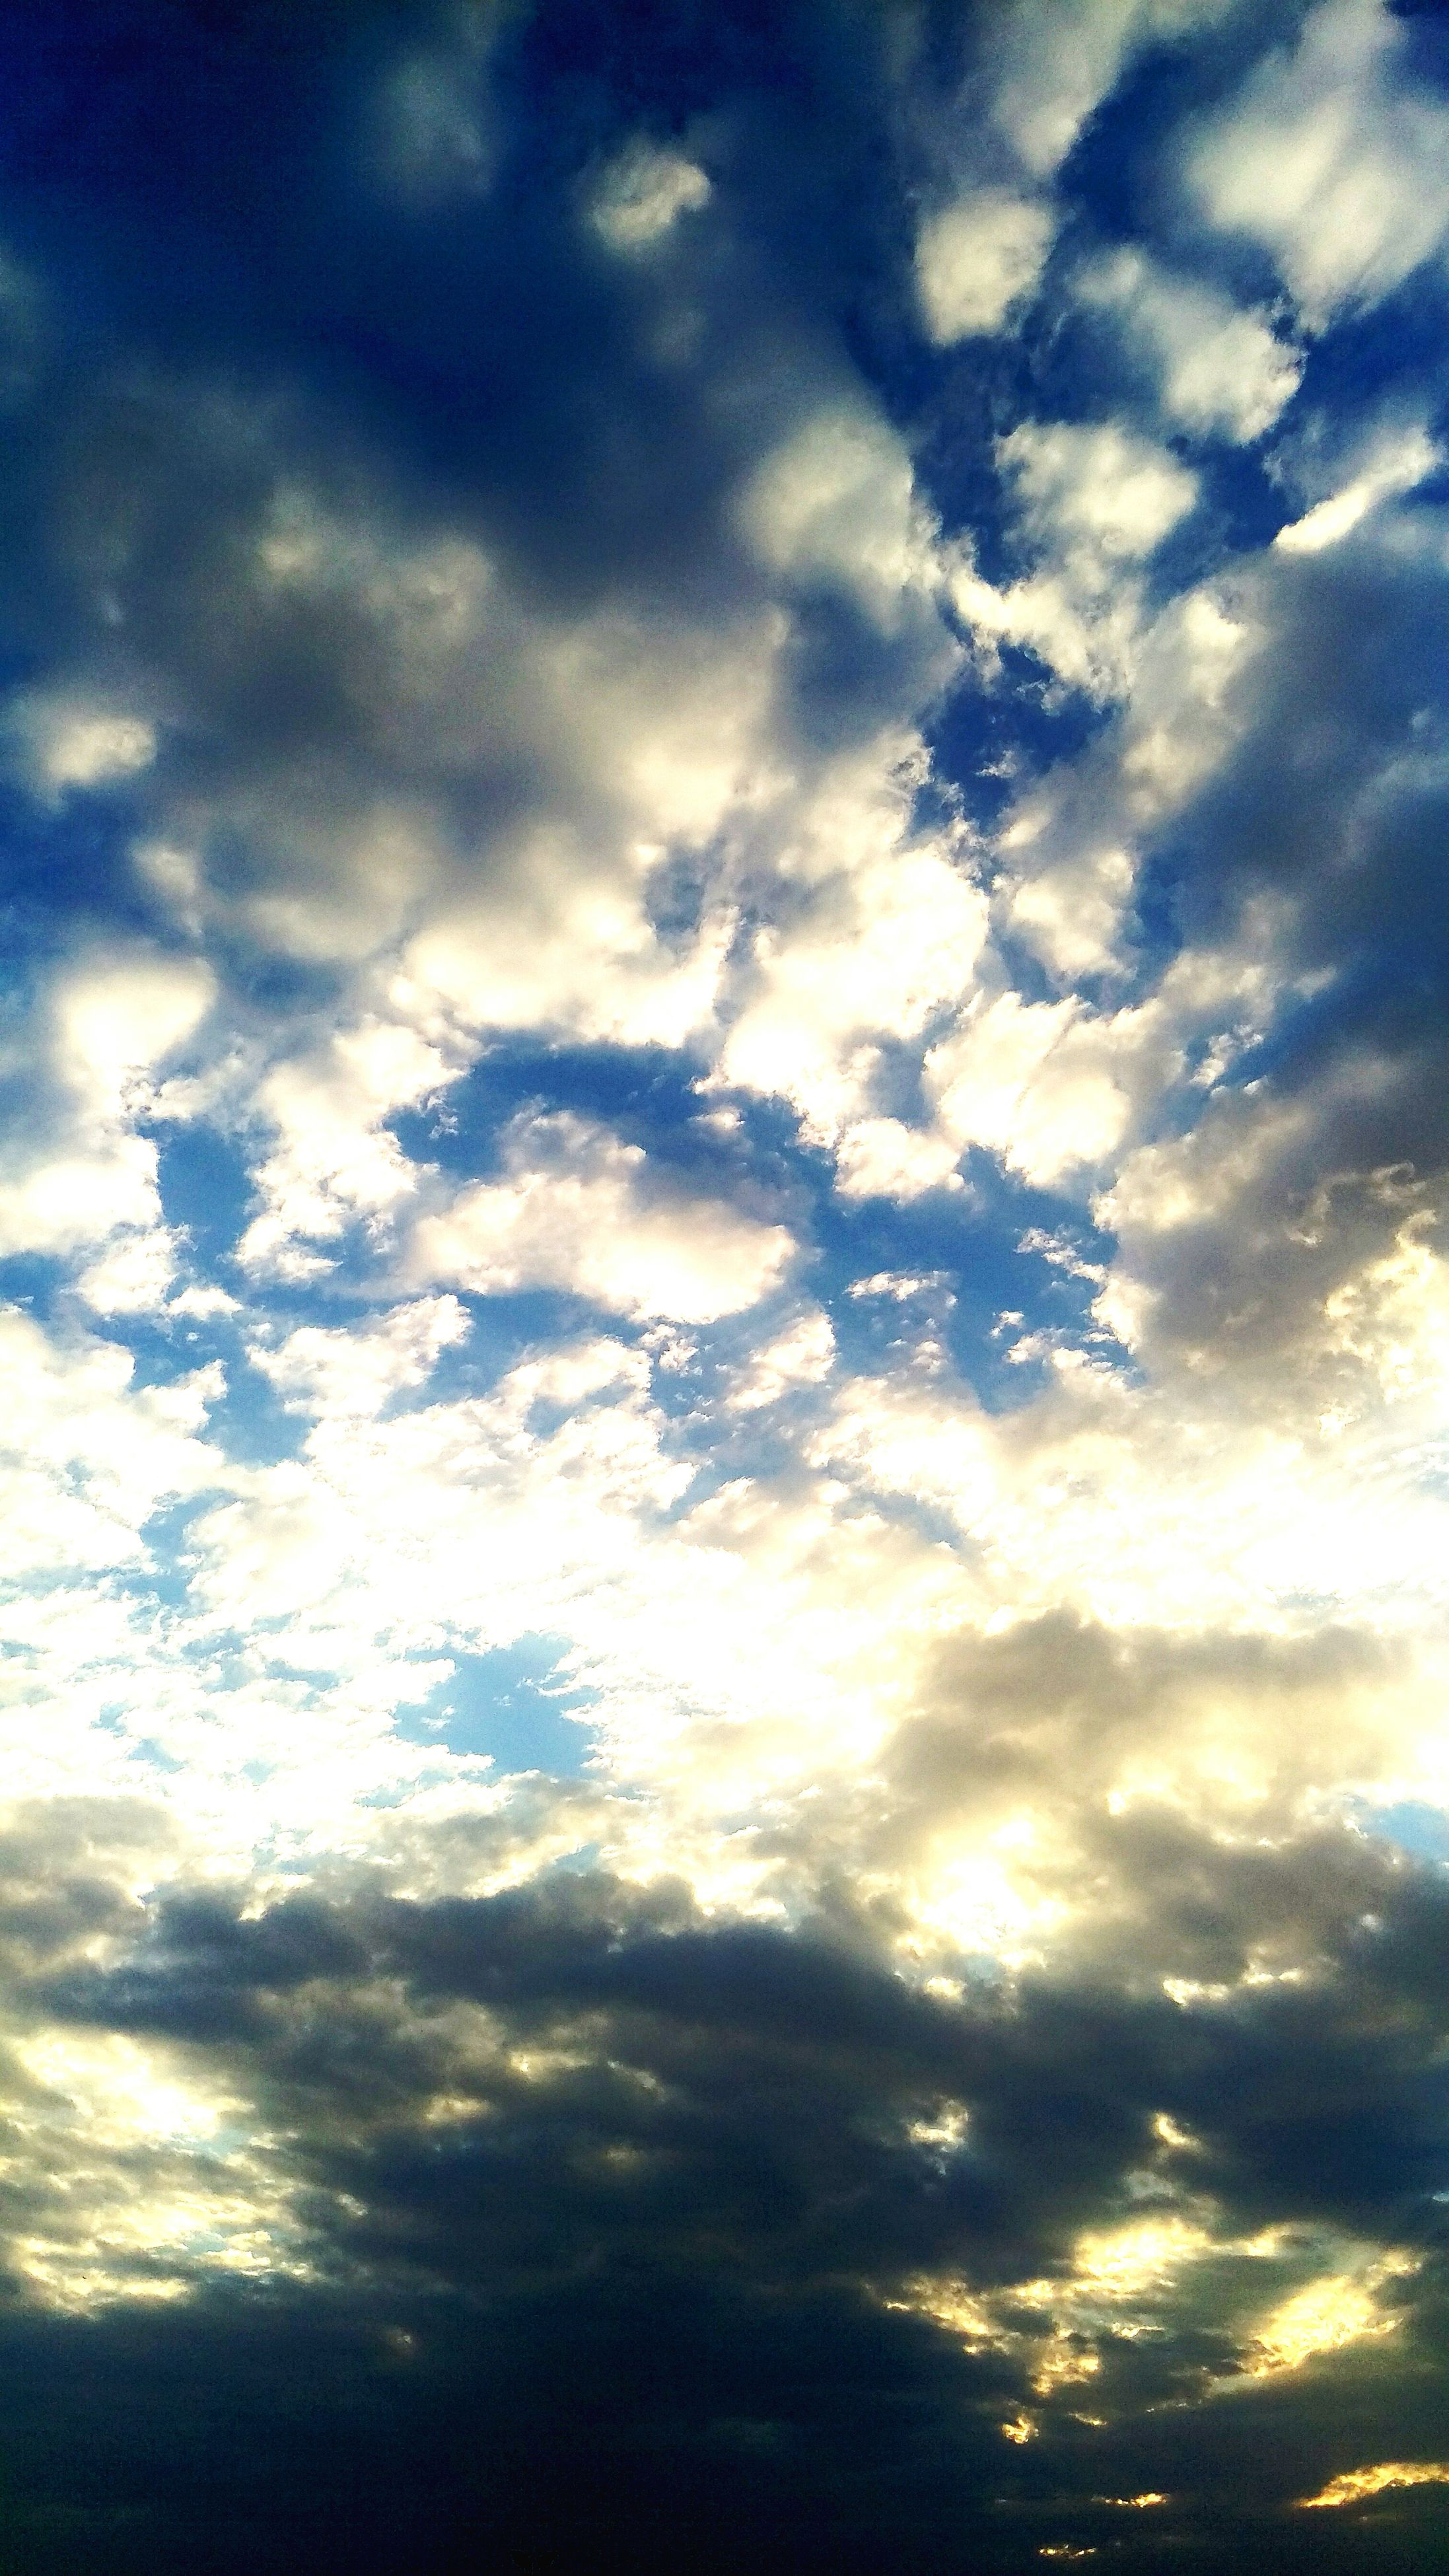 scenics, sky, low angle view, beauty in nature, tranquility, tranquil scene, cloud - sky, majestic, cloud, cloudscape, idyllic, nature, sunbeam, blue, sky only, atmospheric mood, environment, cloudy, meteorology, day, heaven, outdoors, atmosphere, dramatic sky, sun, full frame, moody sky, bright, fluffy, cumulus cloud, ethereal, back lit